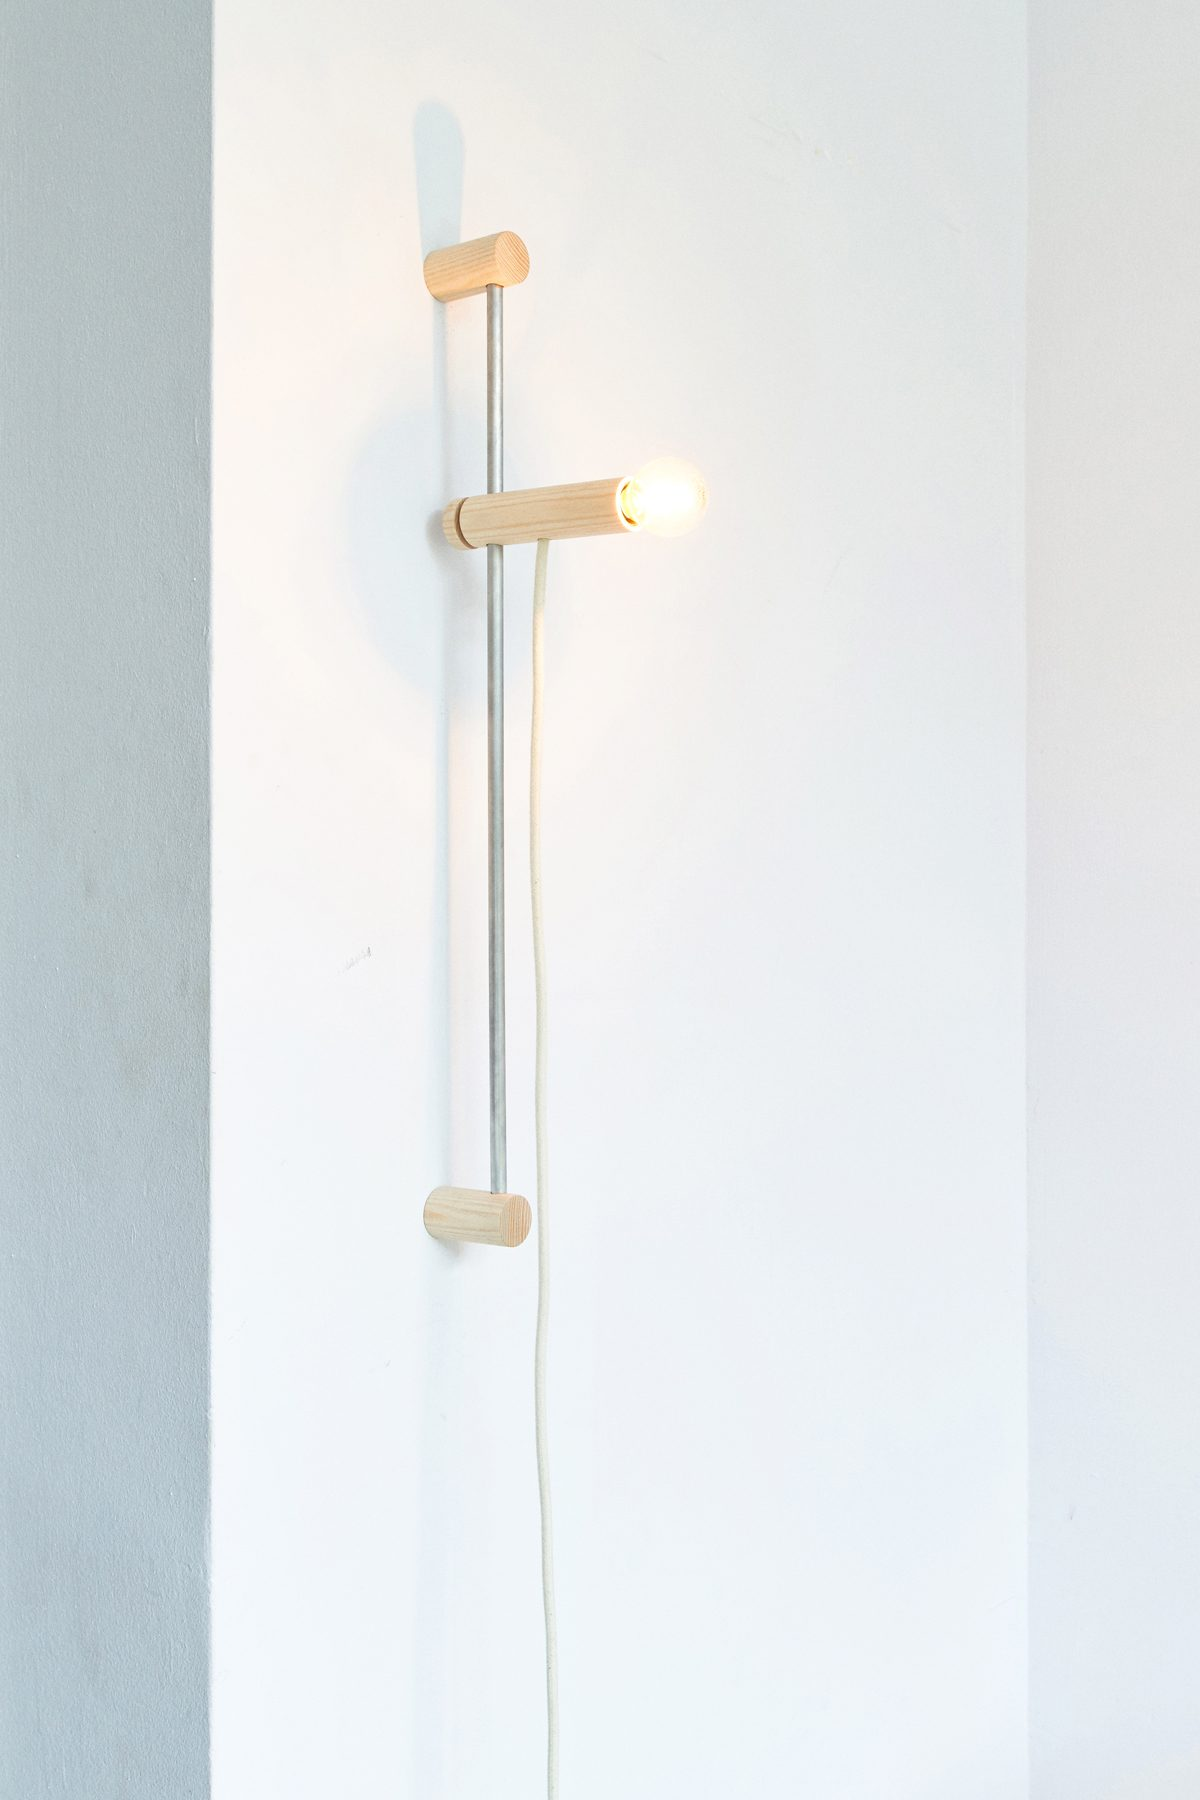 SET walllamp by STILST Gimmiishop